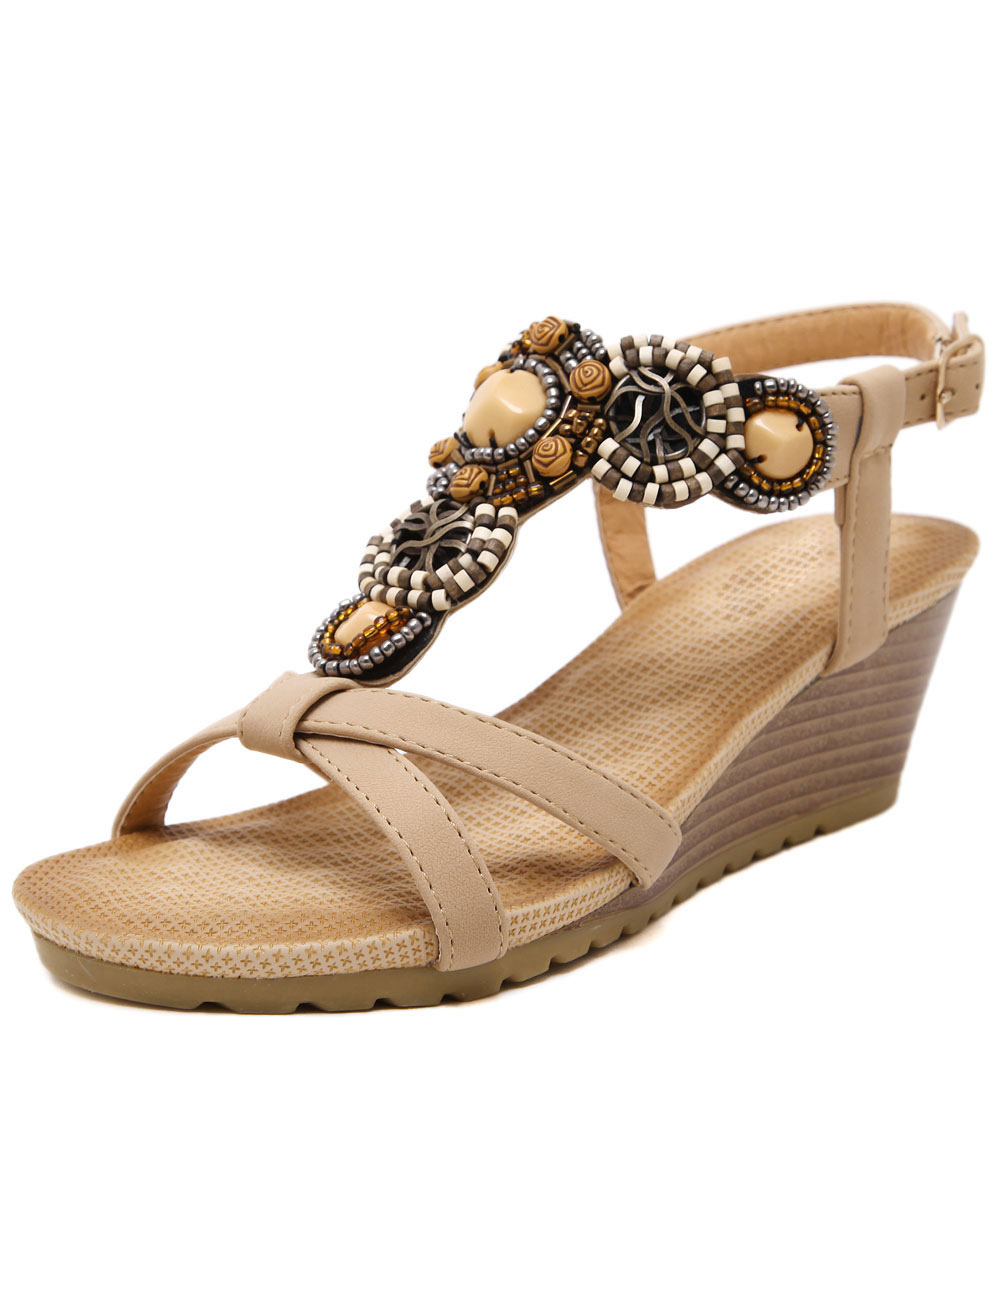 Apricot Wedge Sandals Beaded Bohemian PU Sandals for Women